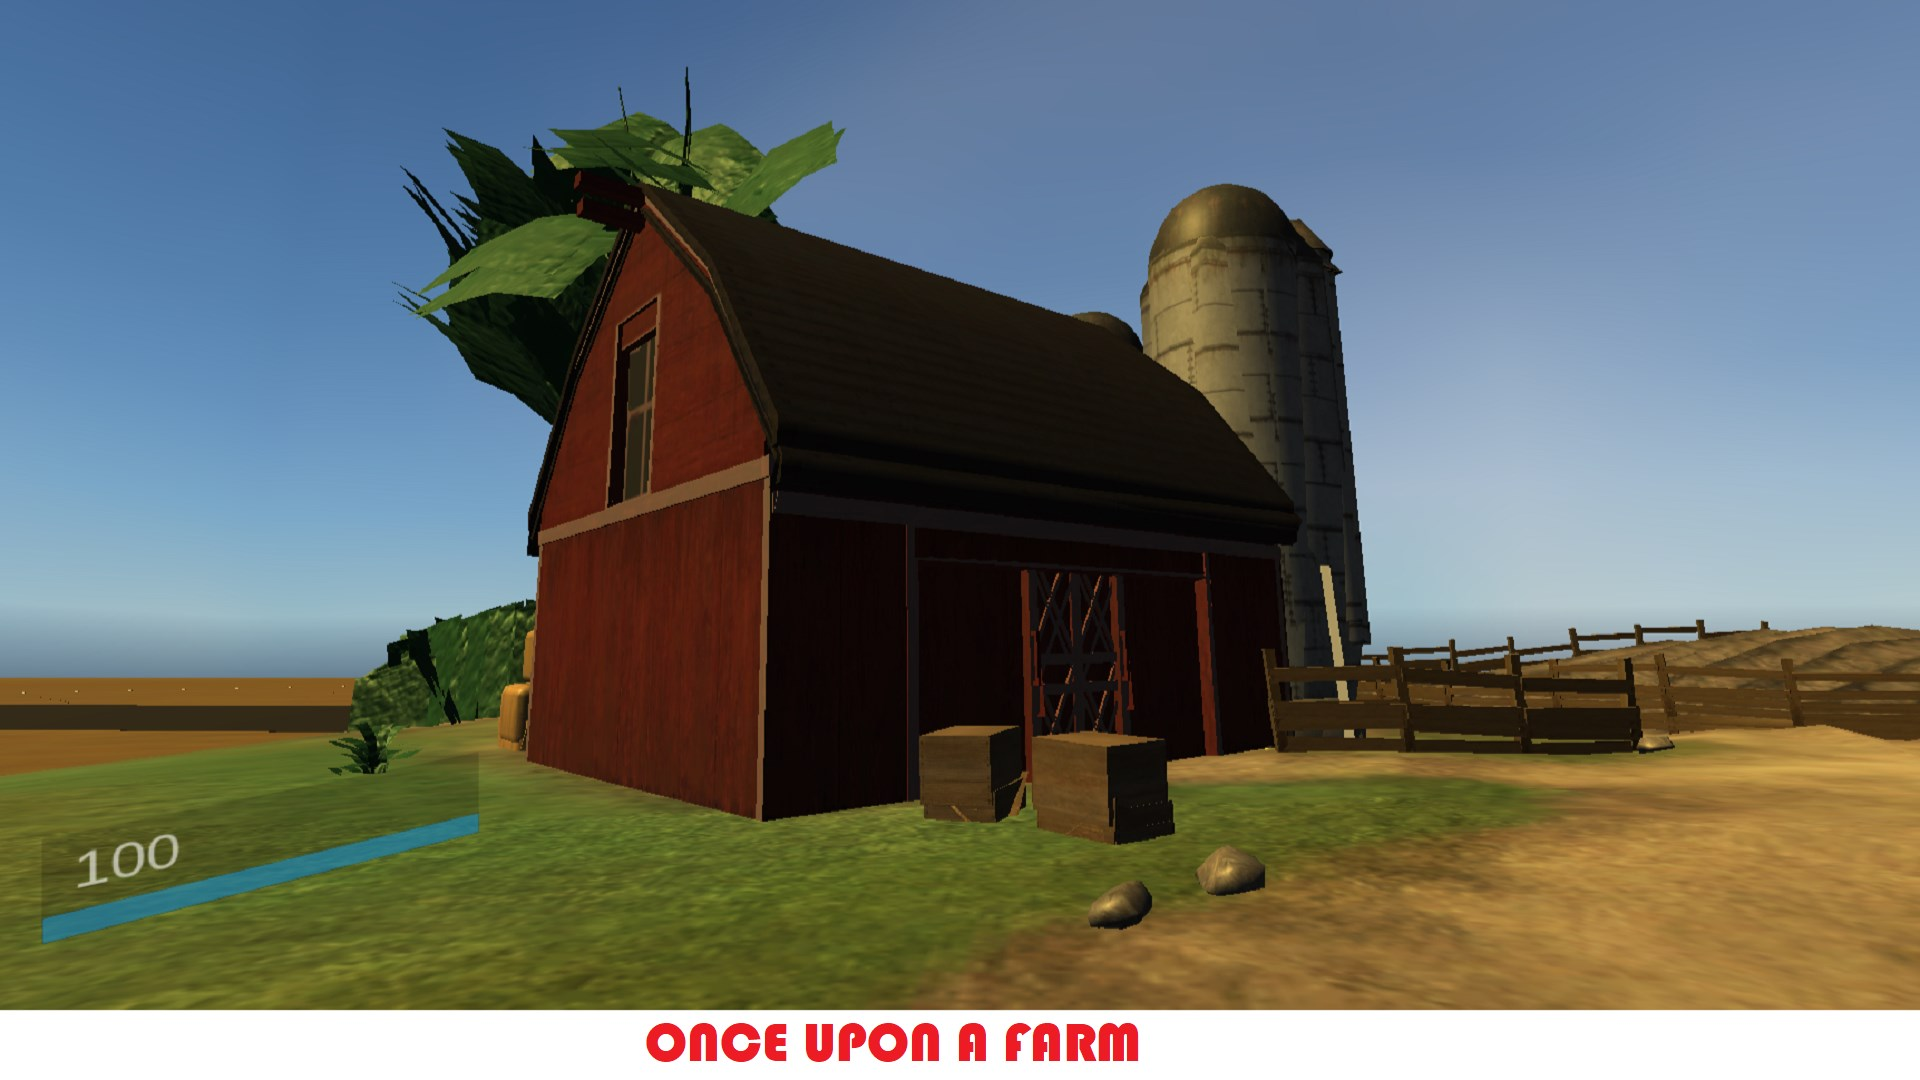 Get Once Upon A Farm - Microsoft Store